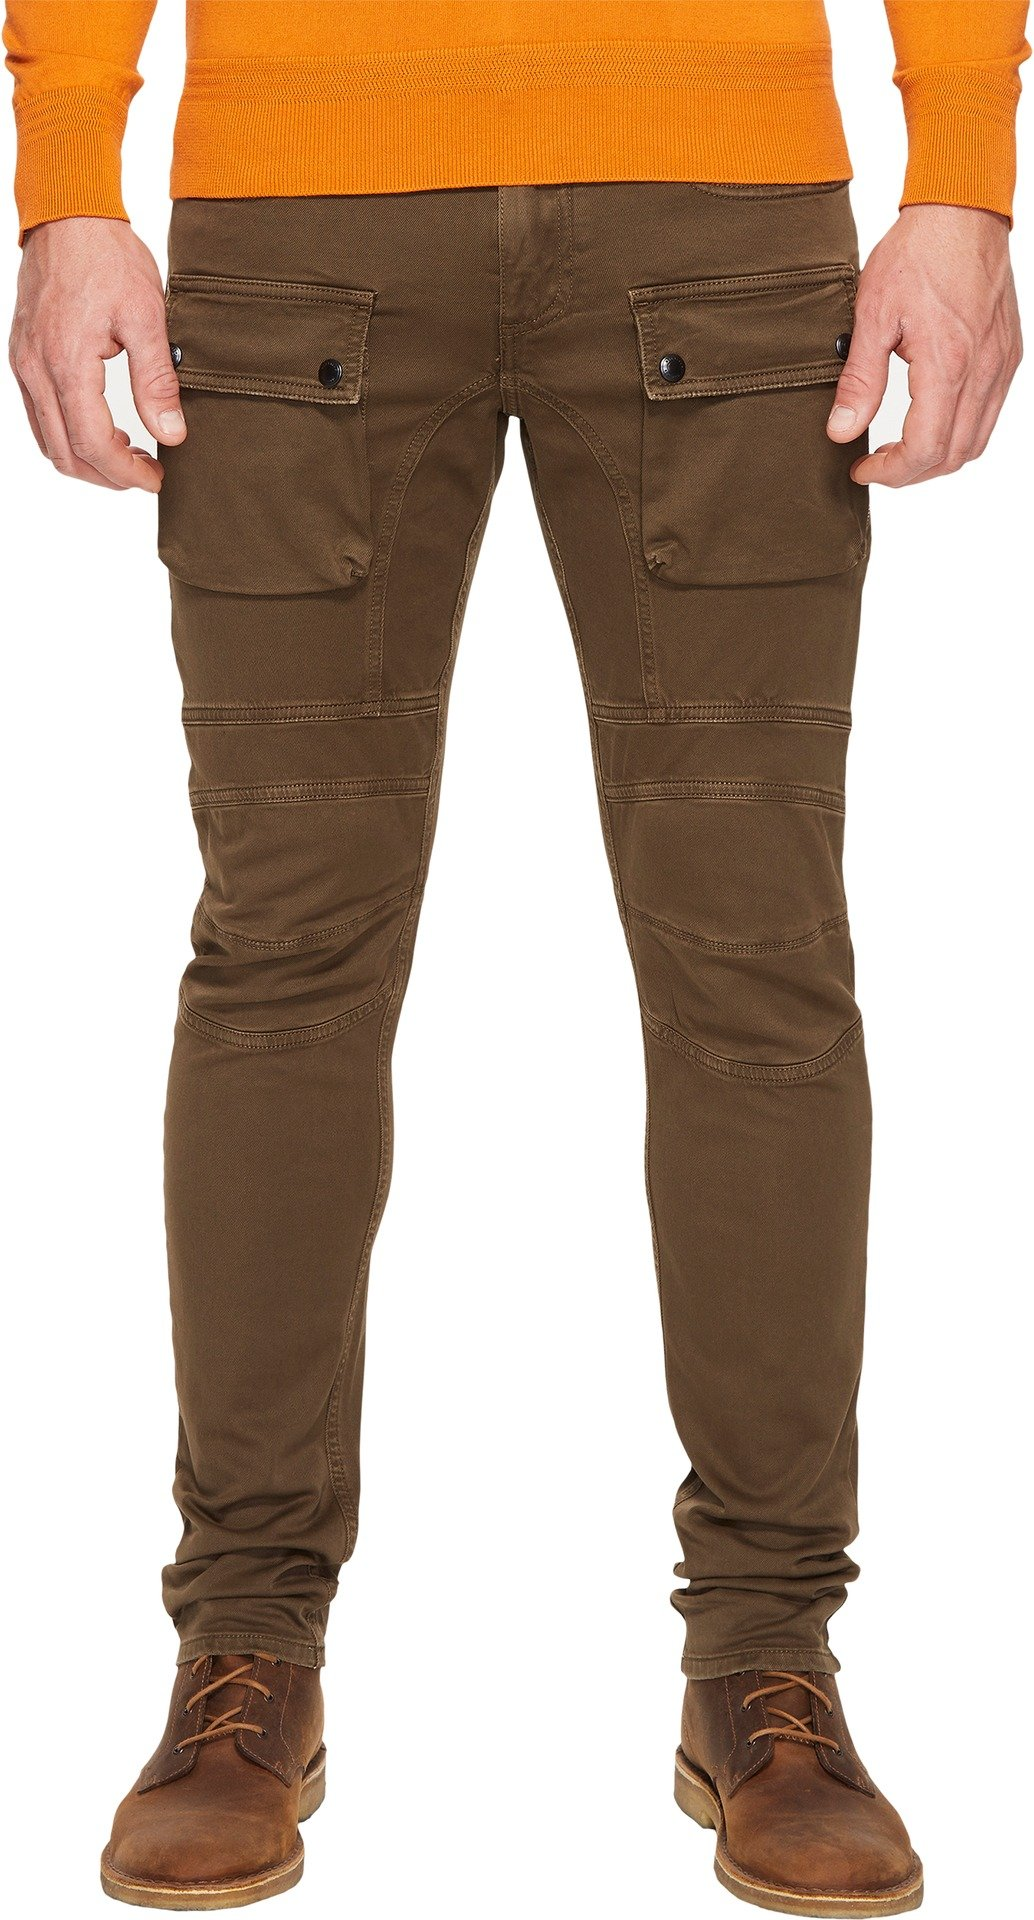 BELSTAFF Men's Felmore Moto Stretch Cotton Chino Pants Sable Pants